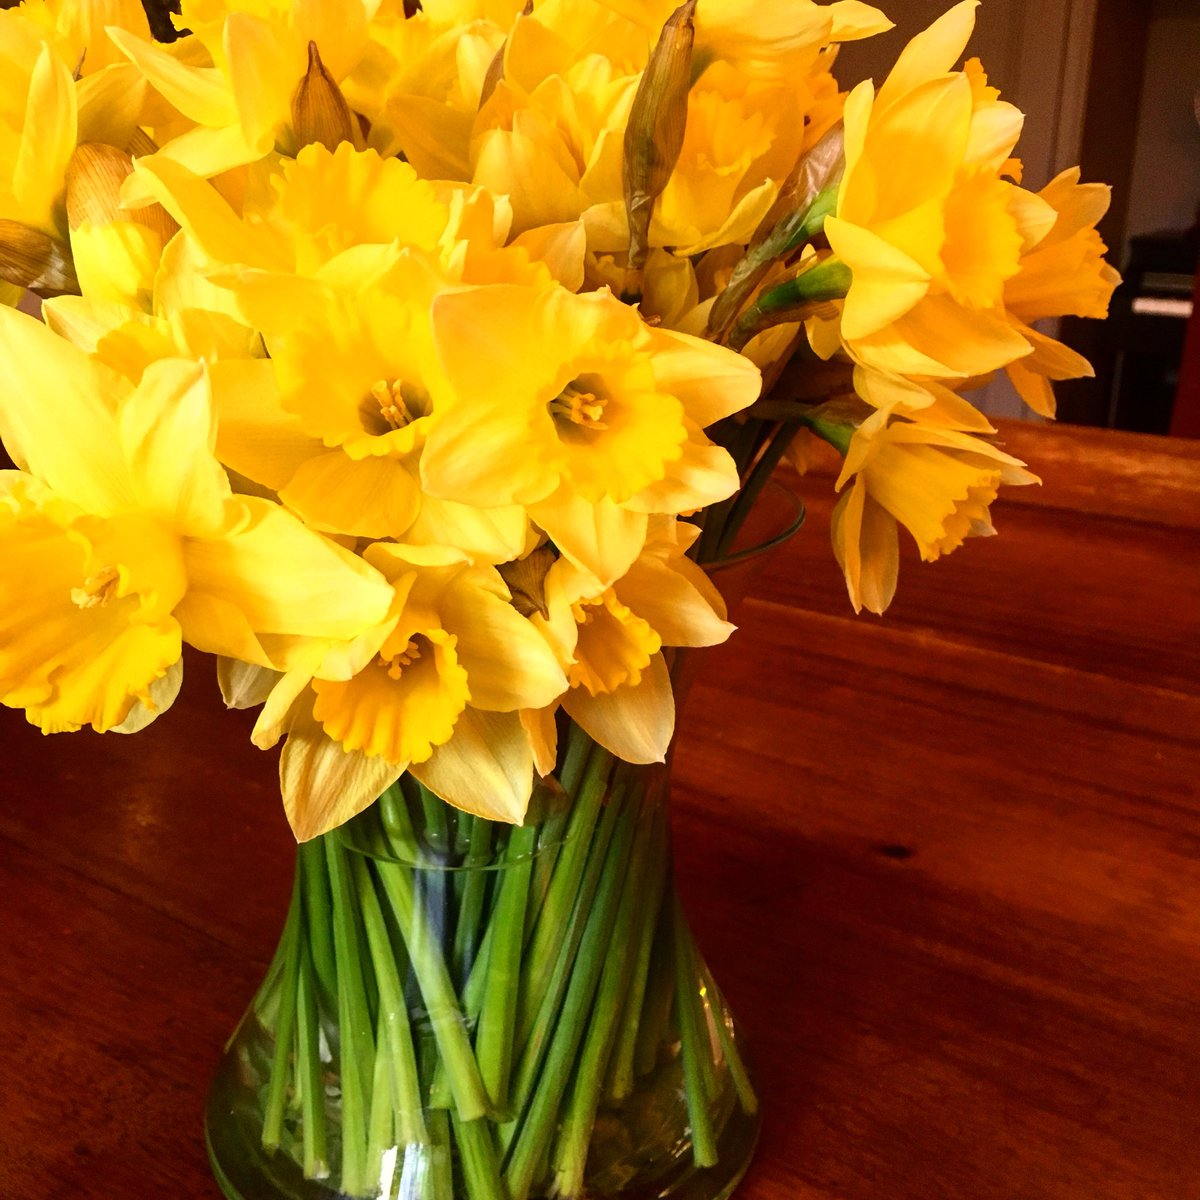 Sarah Beeny On Twitter My Absolute Favourite Spring Flower Some